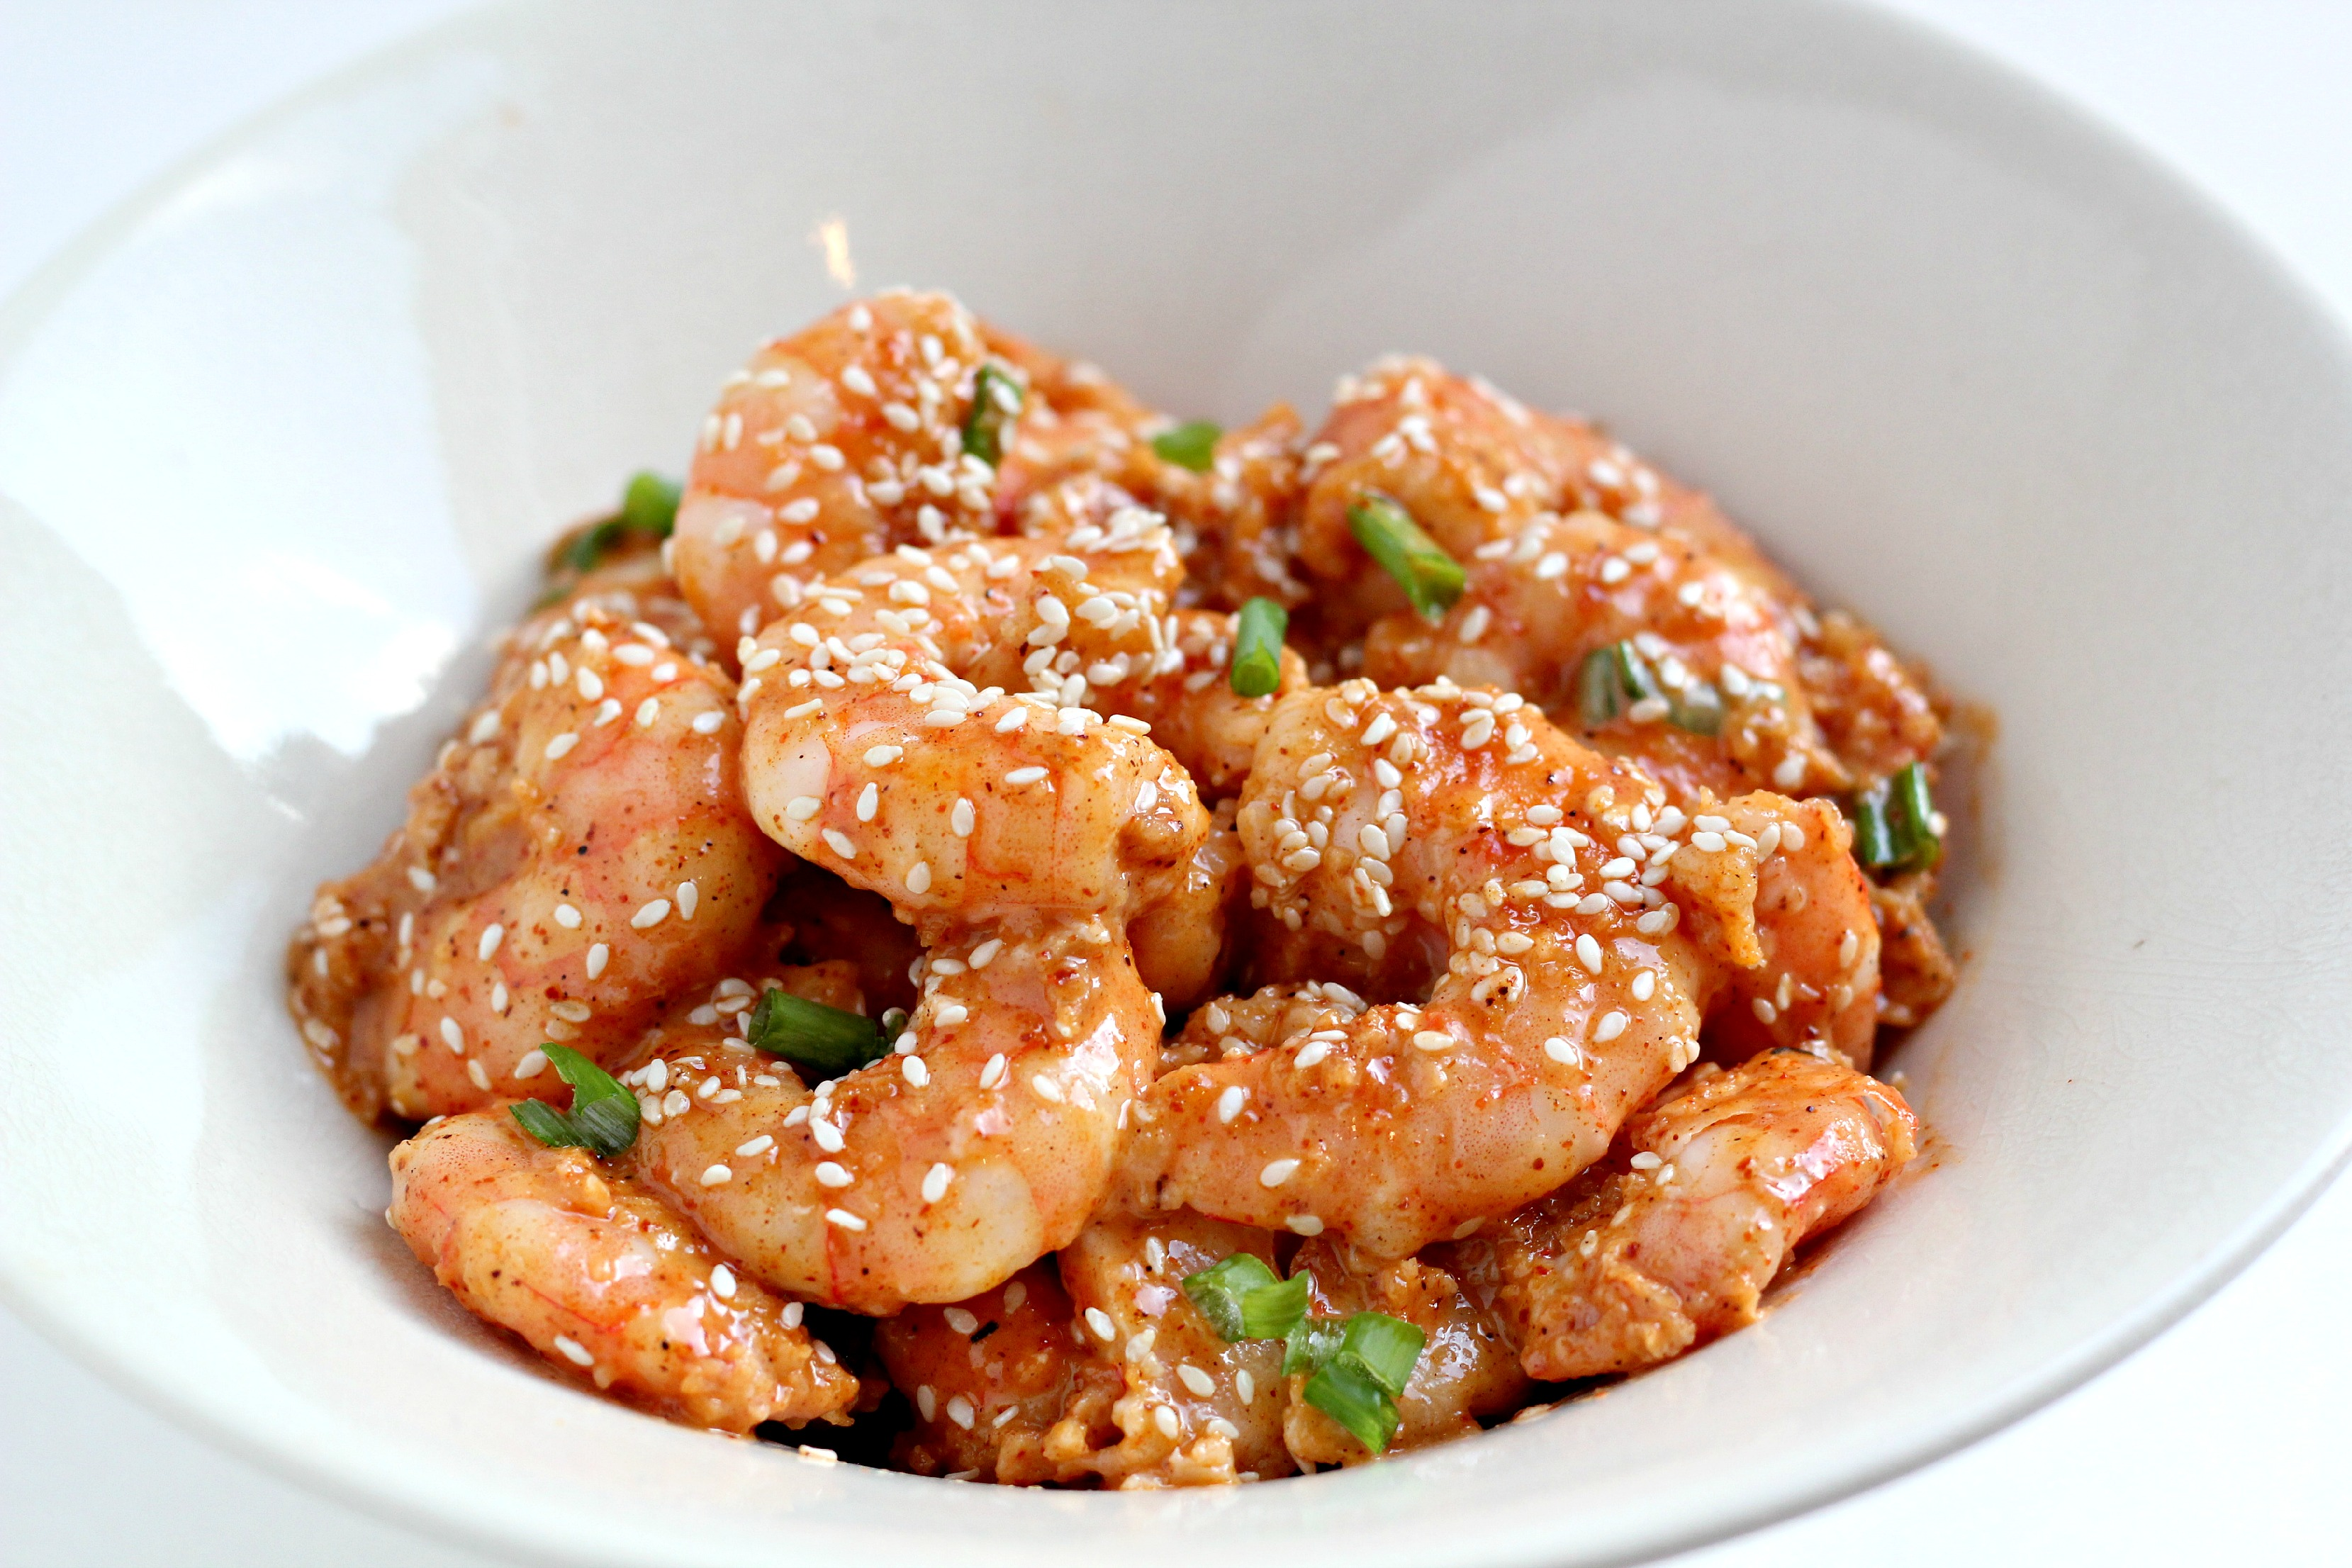 This Paleo Bam Bam Shrimp can be made in 30 minutes and is so delicious!